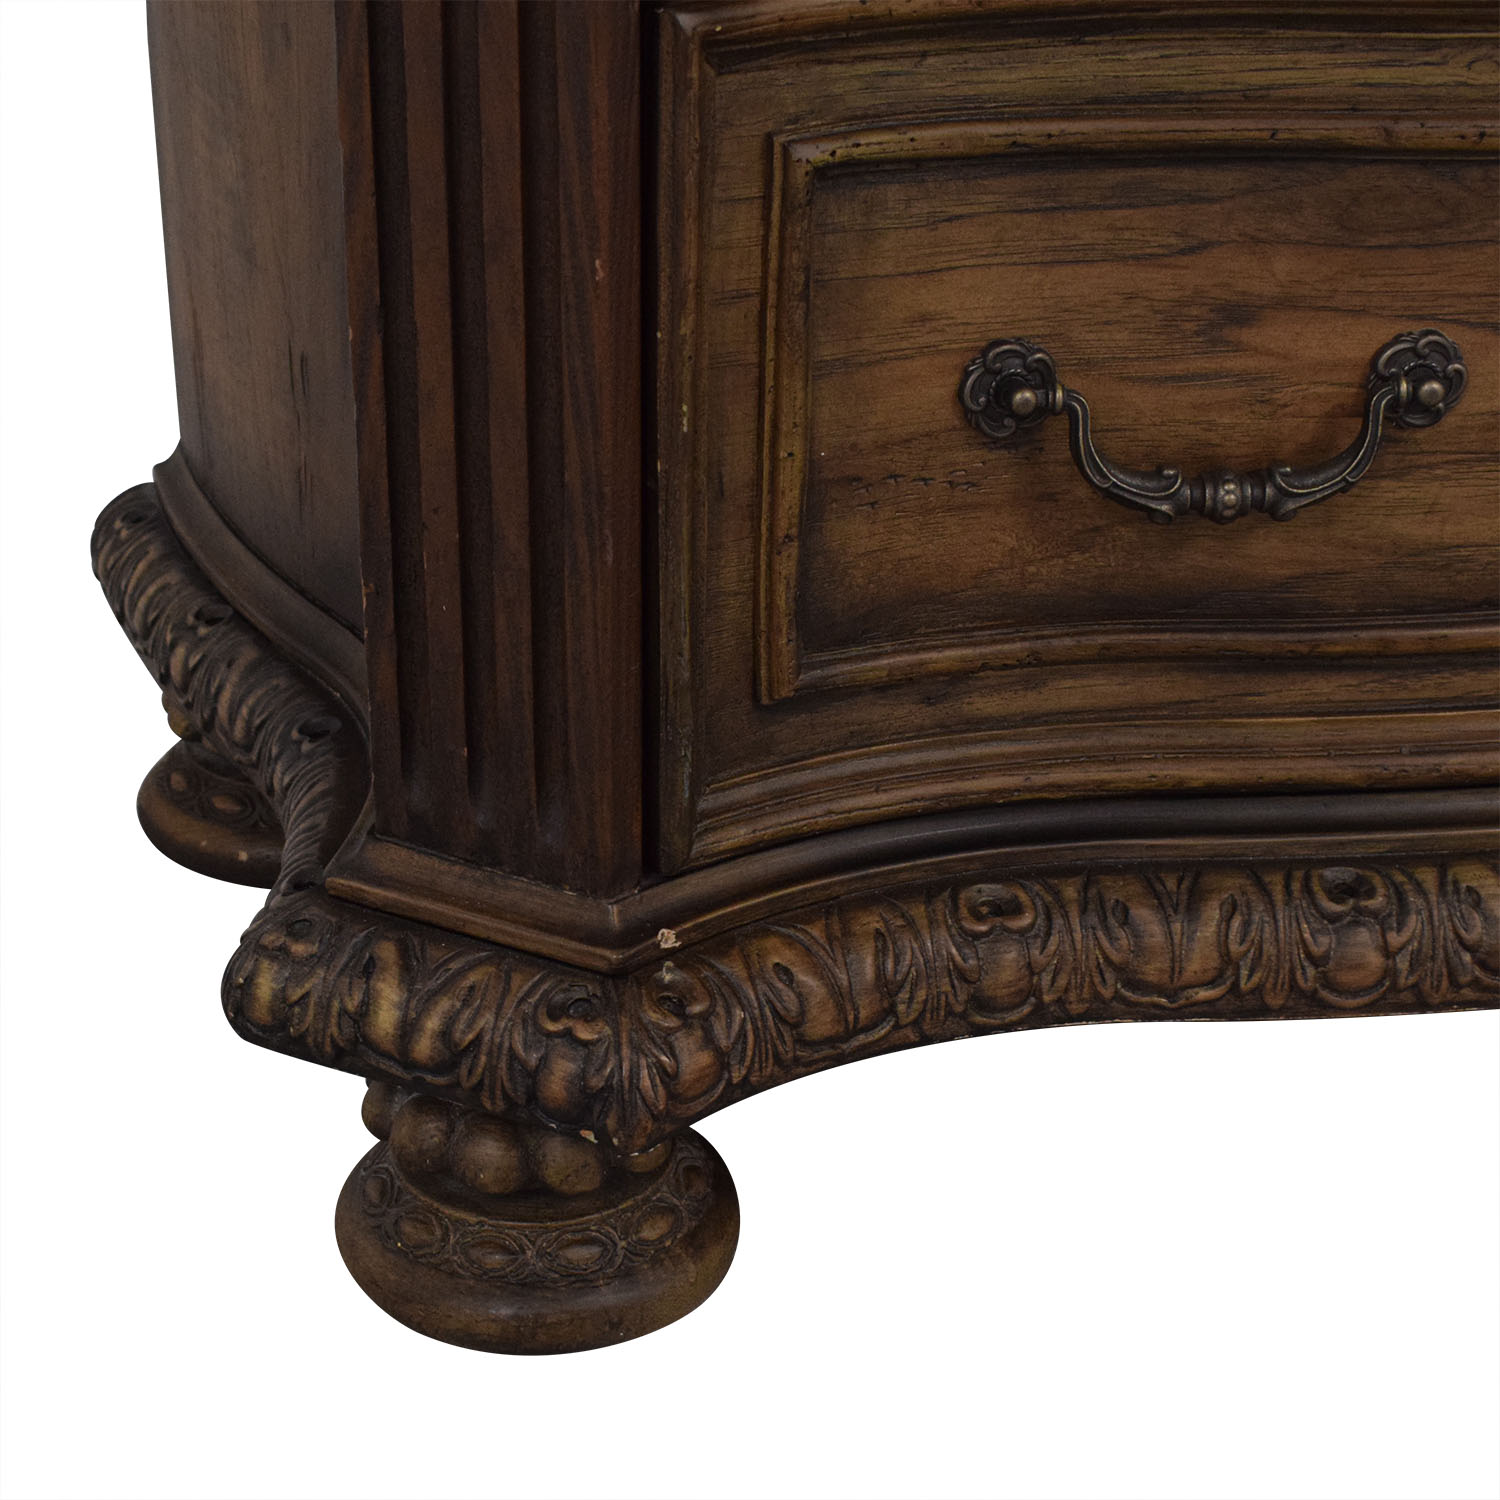 Hooker Furniture Hooker Furniture Rhapsody Five Drawer Chest ma